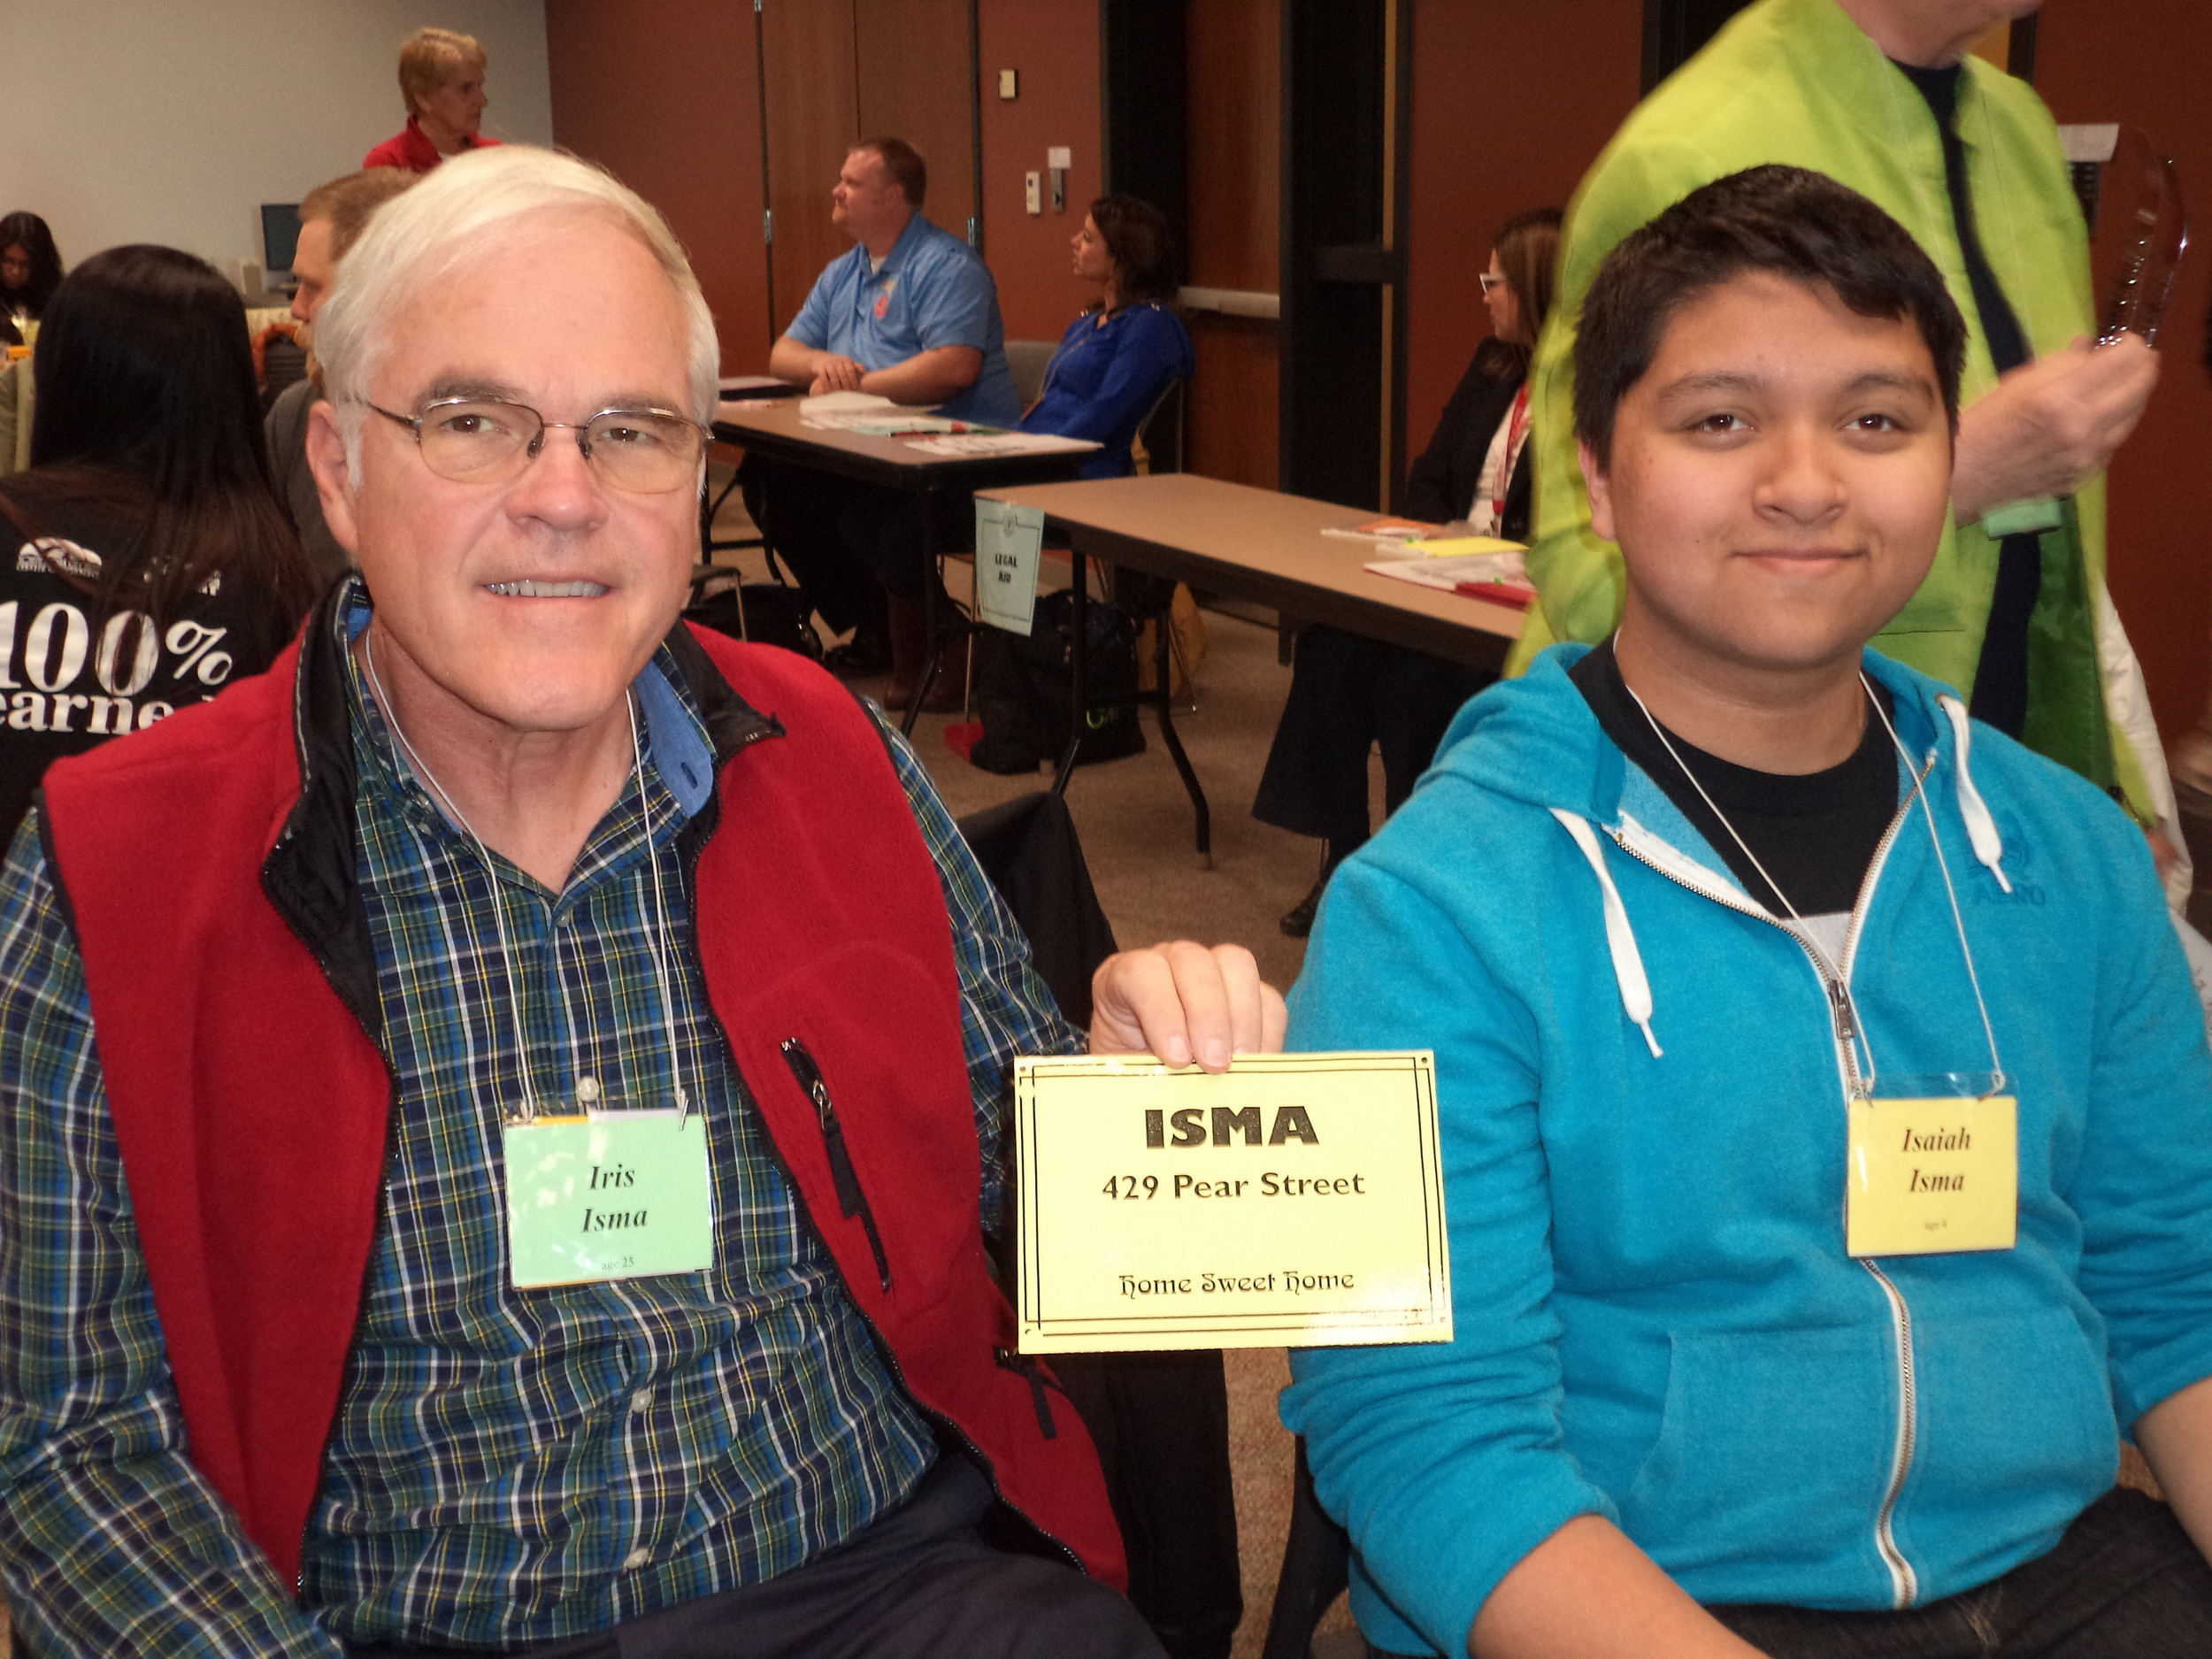 Poverty Simulation-Isma family-Jim, student.JPG